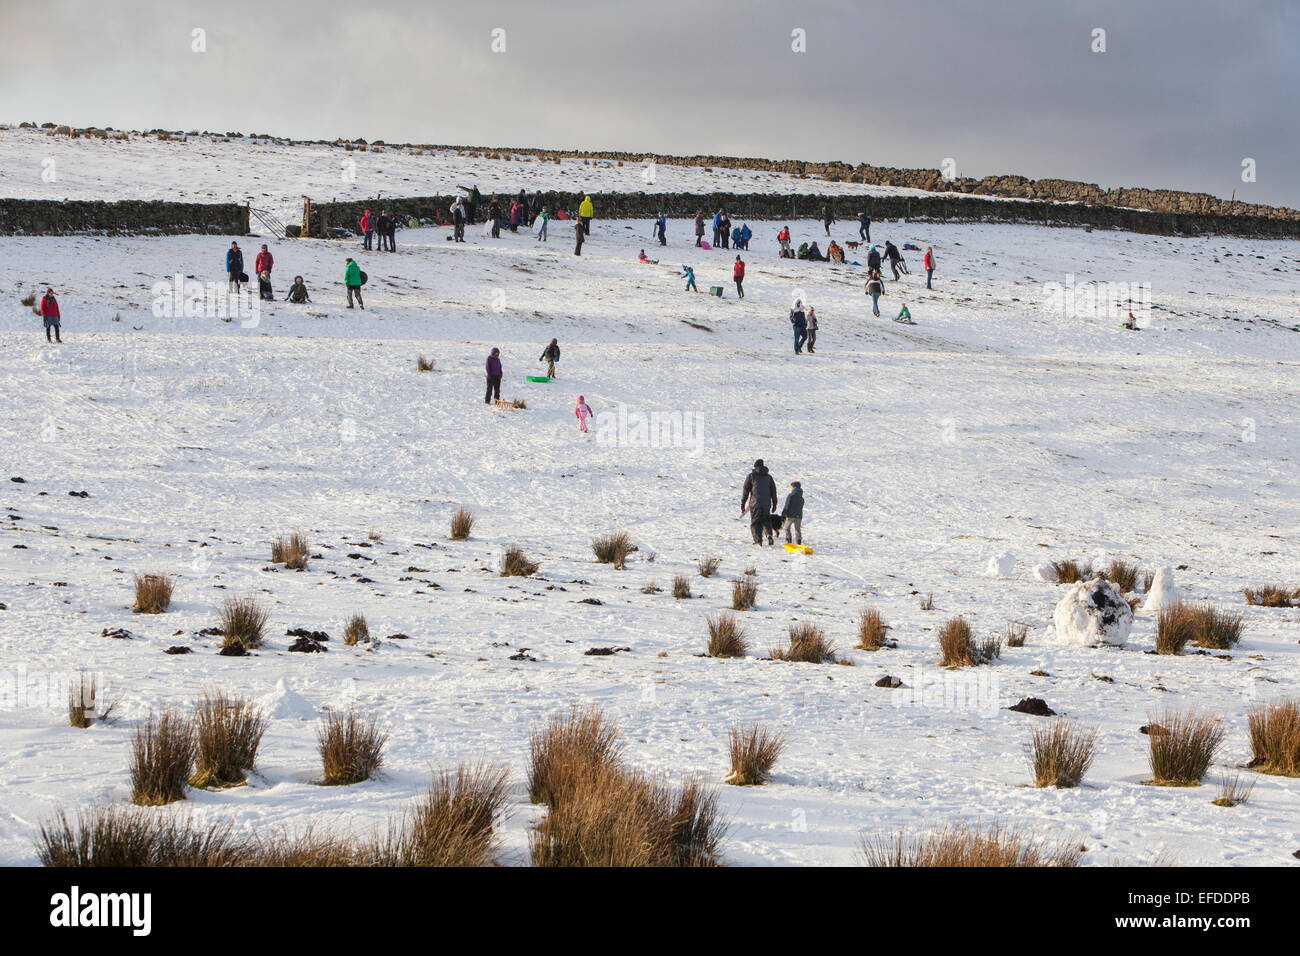 Dartmoor, Devon, UK. 1st February, 2015. Families enjoy a bitingly cold snowy day on Dartmoor while sledging with - Stock Image